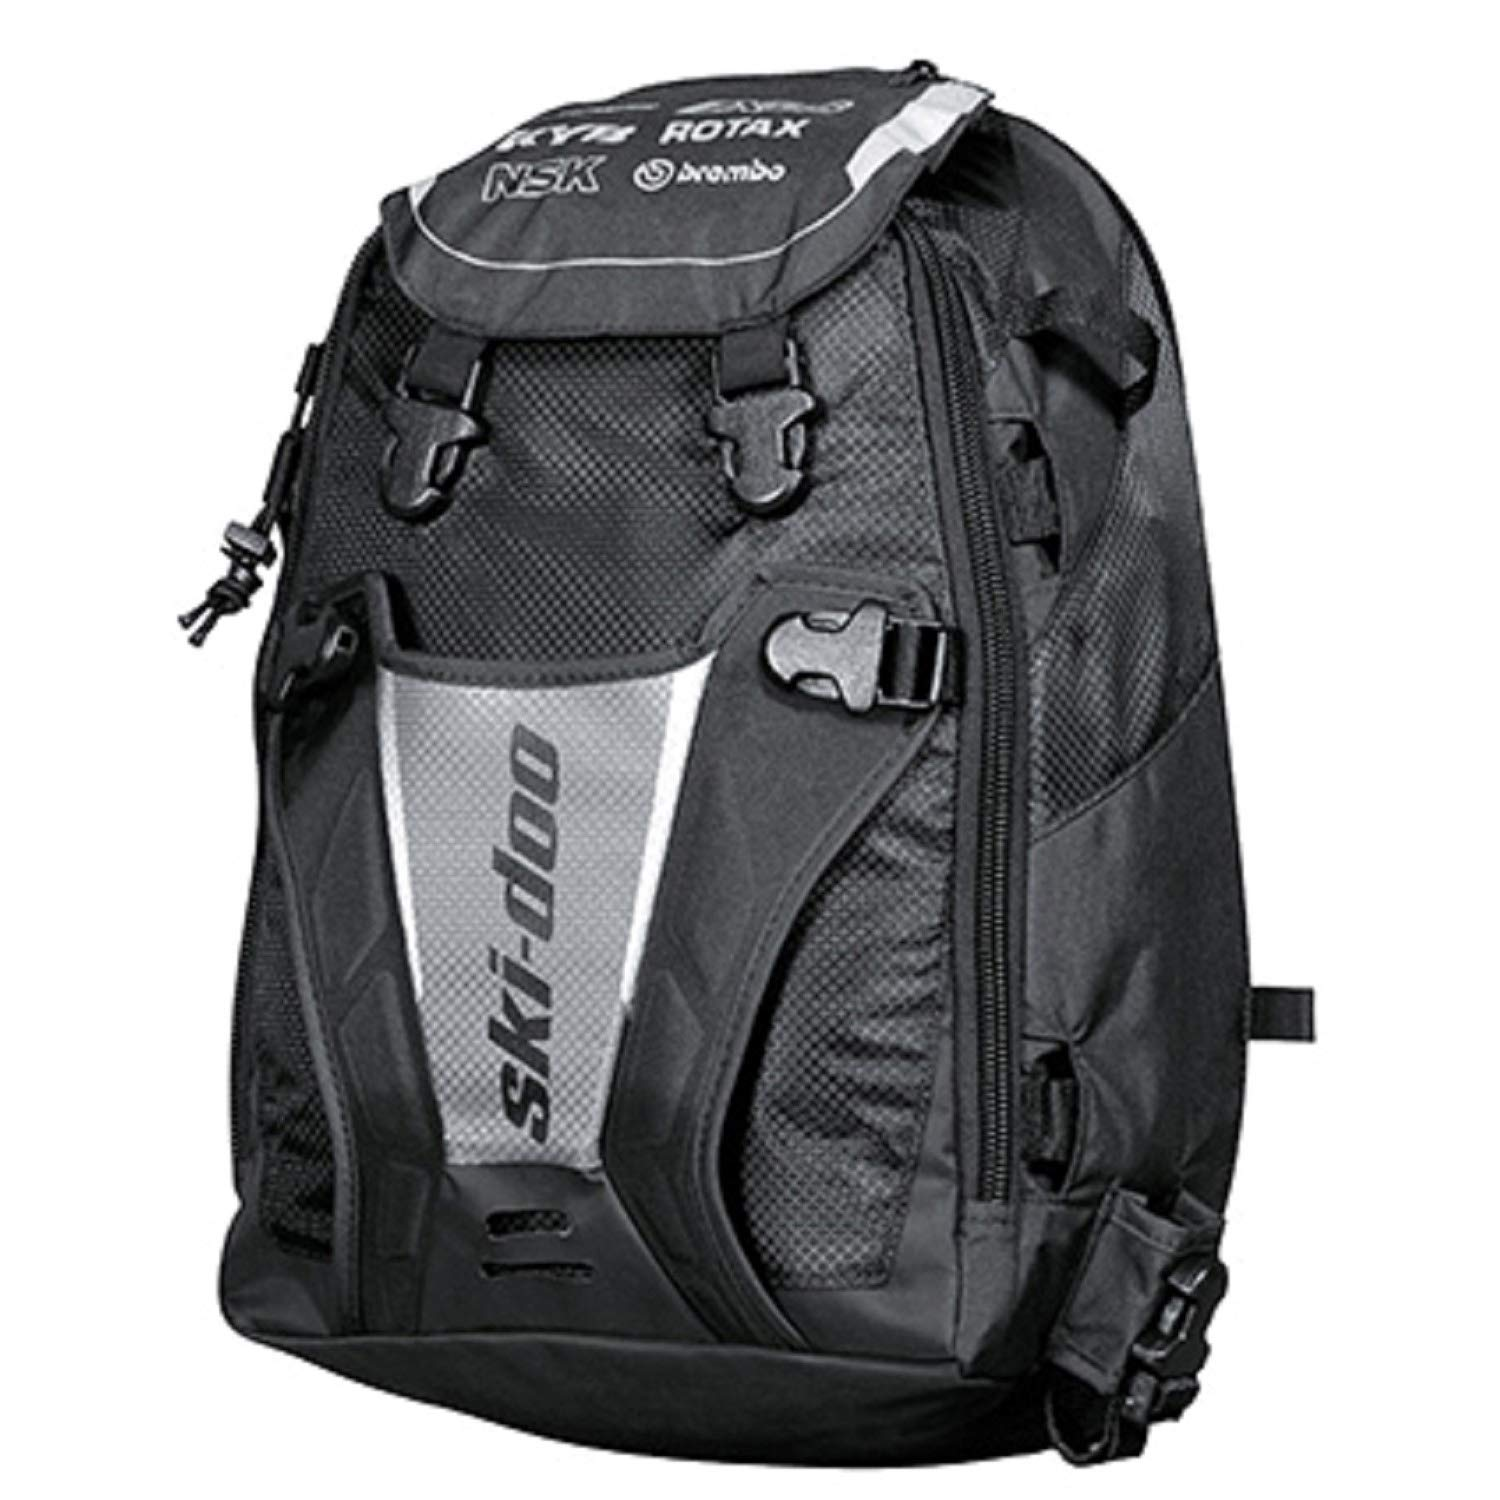 Ski Doo Tunnel Backpack with Linq Soft Strap-black #860200939